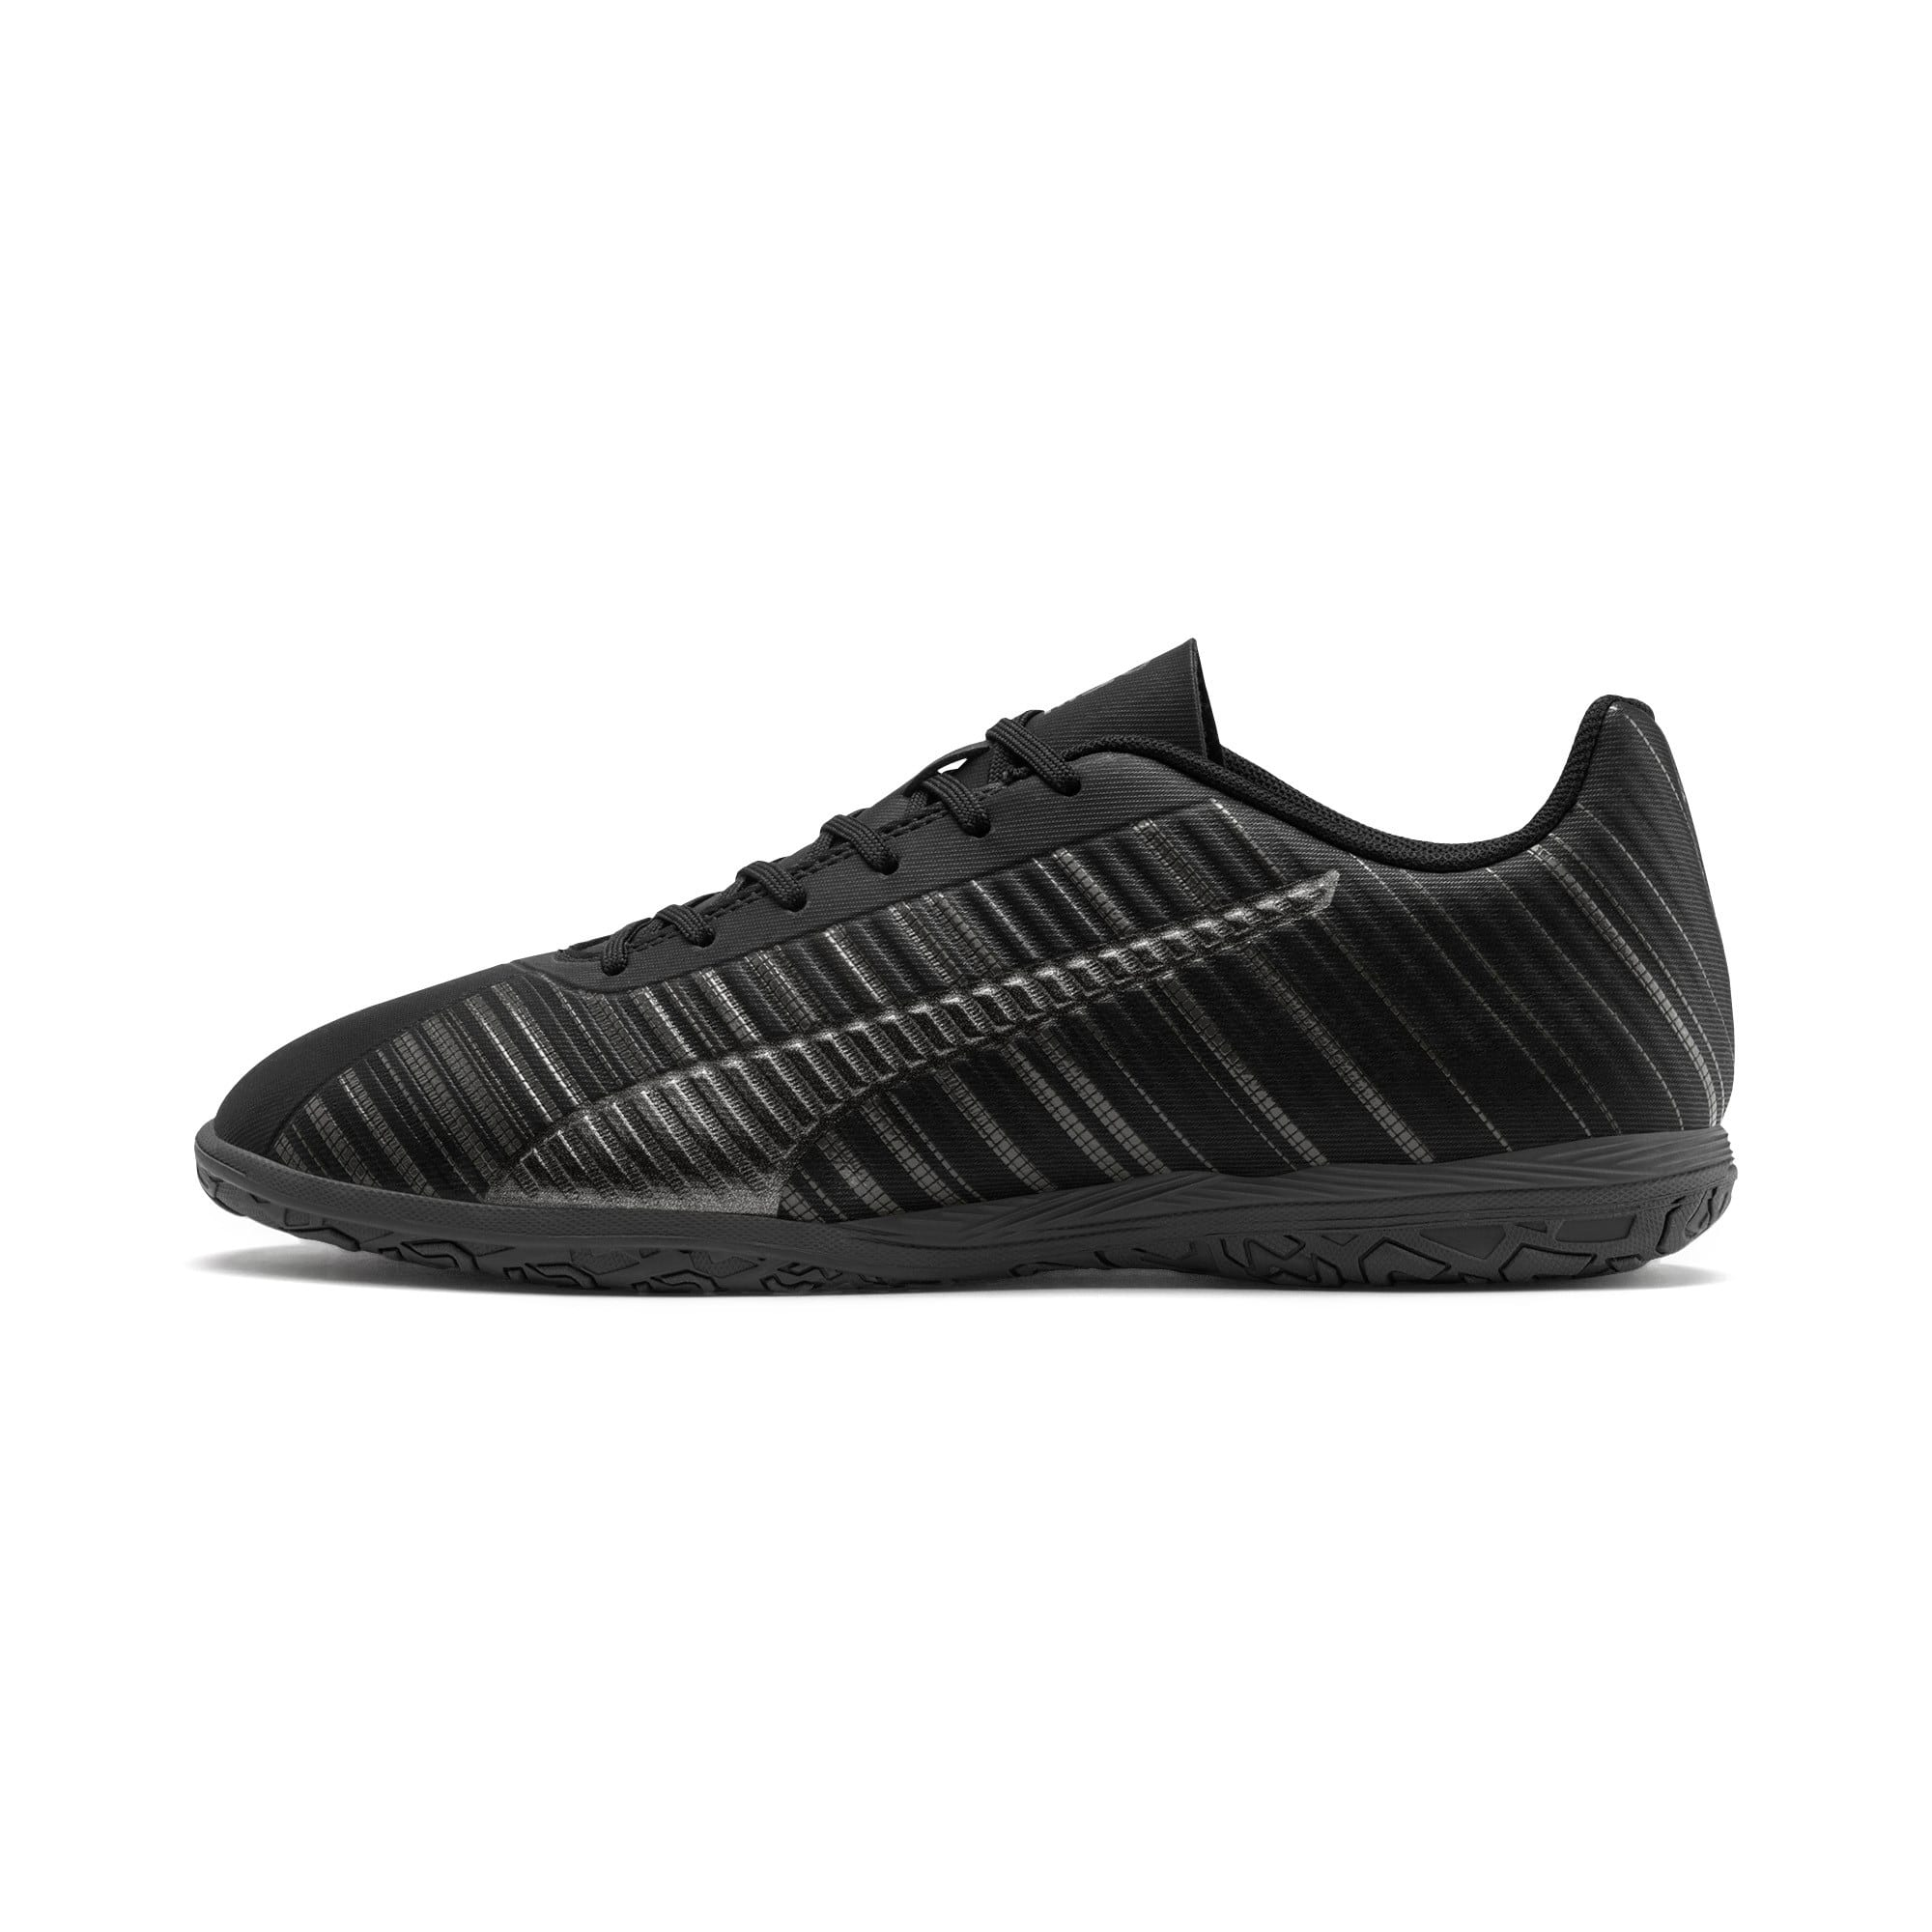 Thumbnail 1 of PUMA ONE 5.4 IT Men's Soccer Shoes, Black-Black-Puma Aged Silver, medium